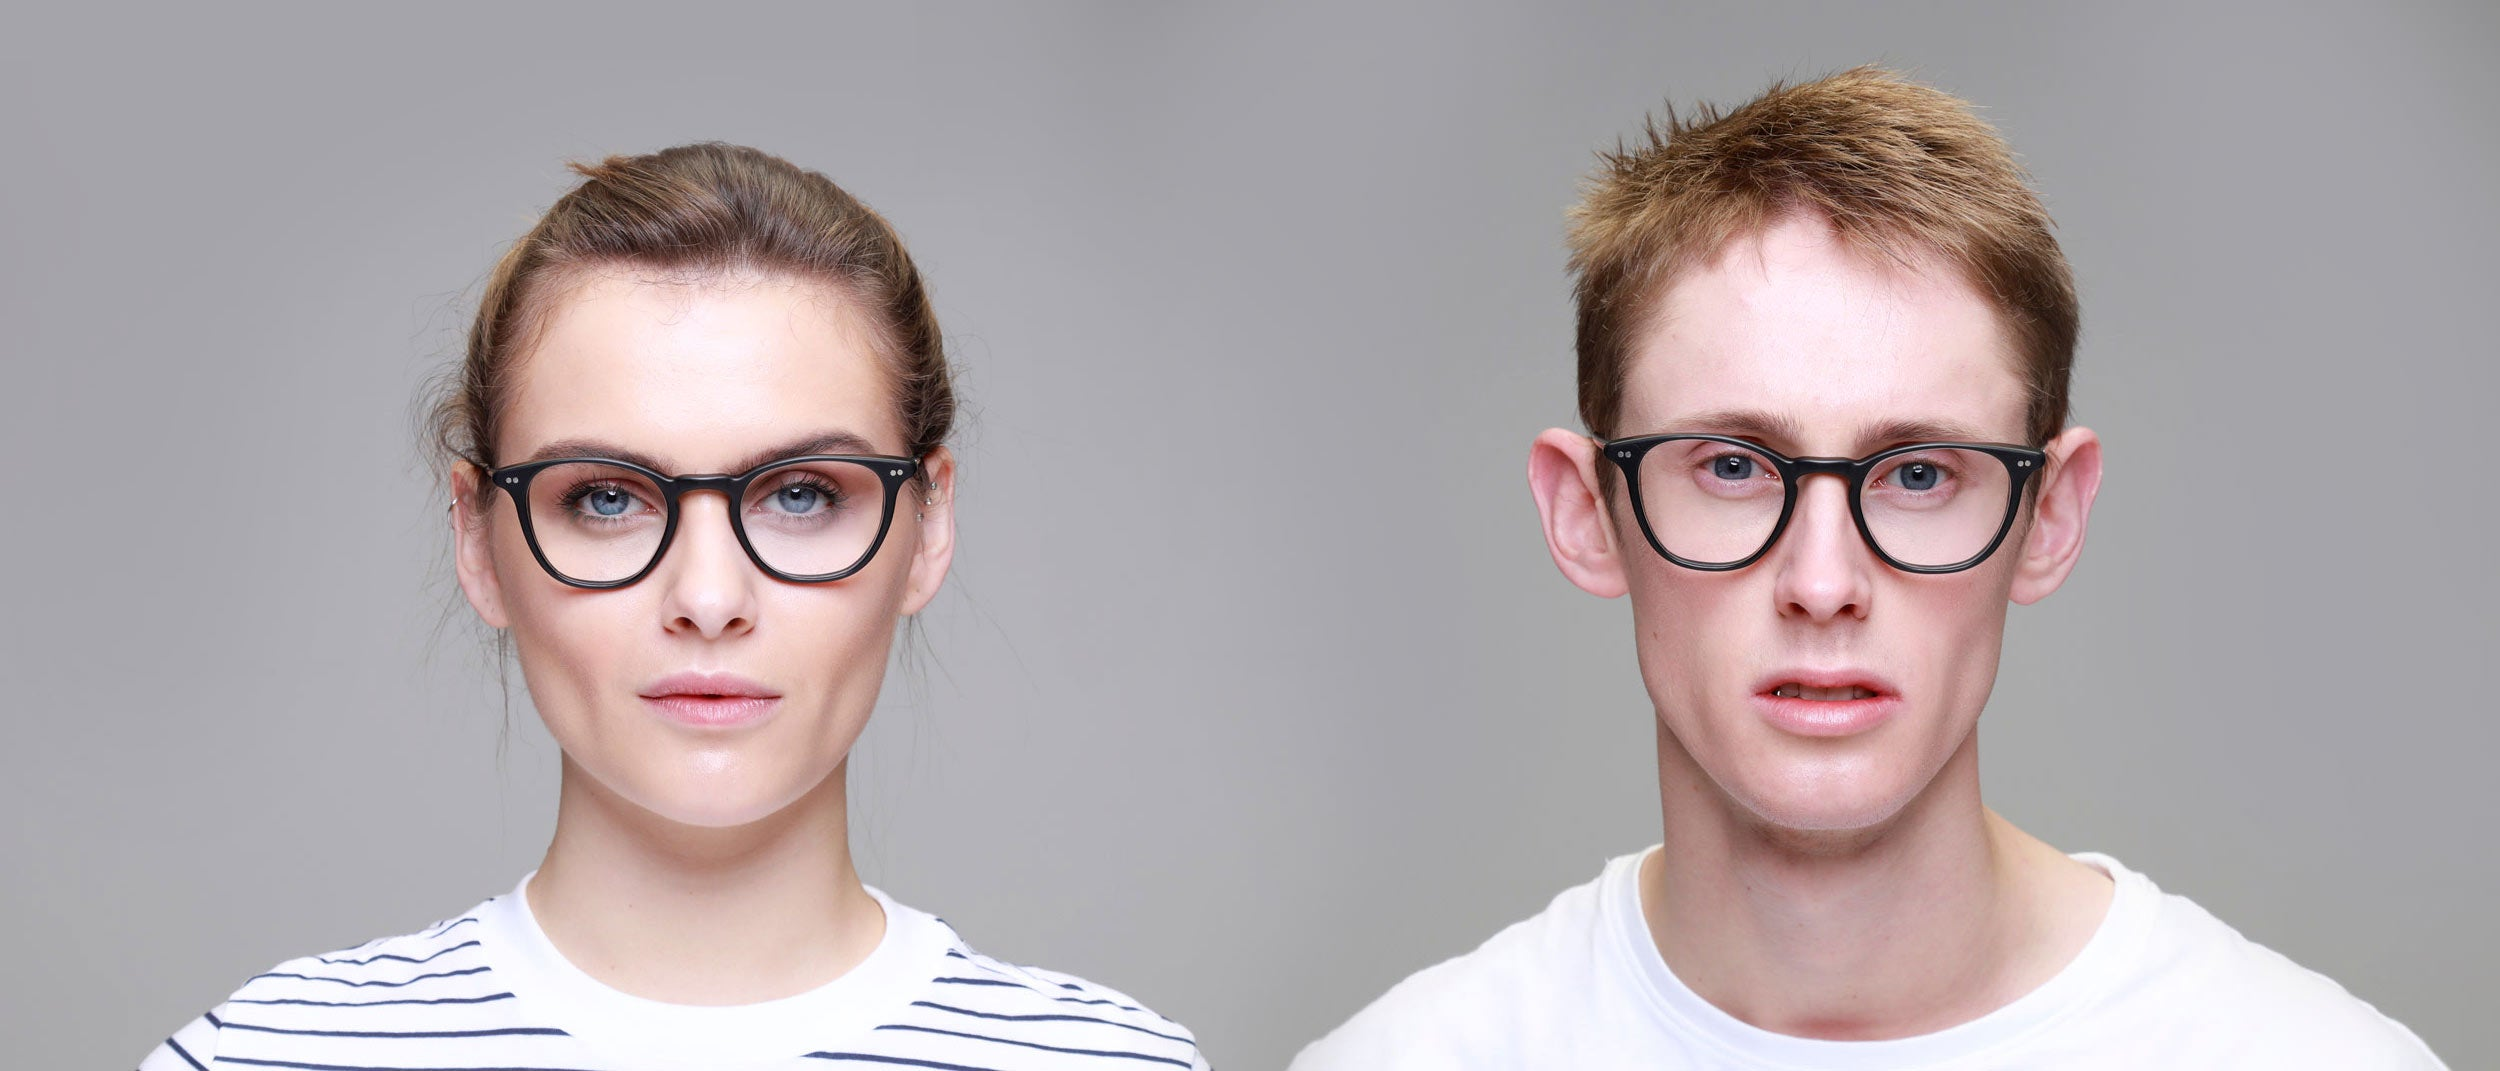 Man-and-Woman-Wearing-Varifocal-Black-frame-glasses